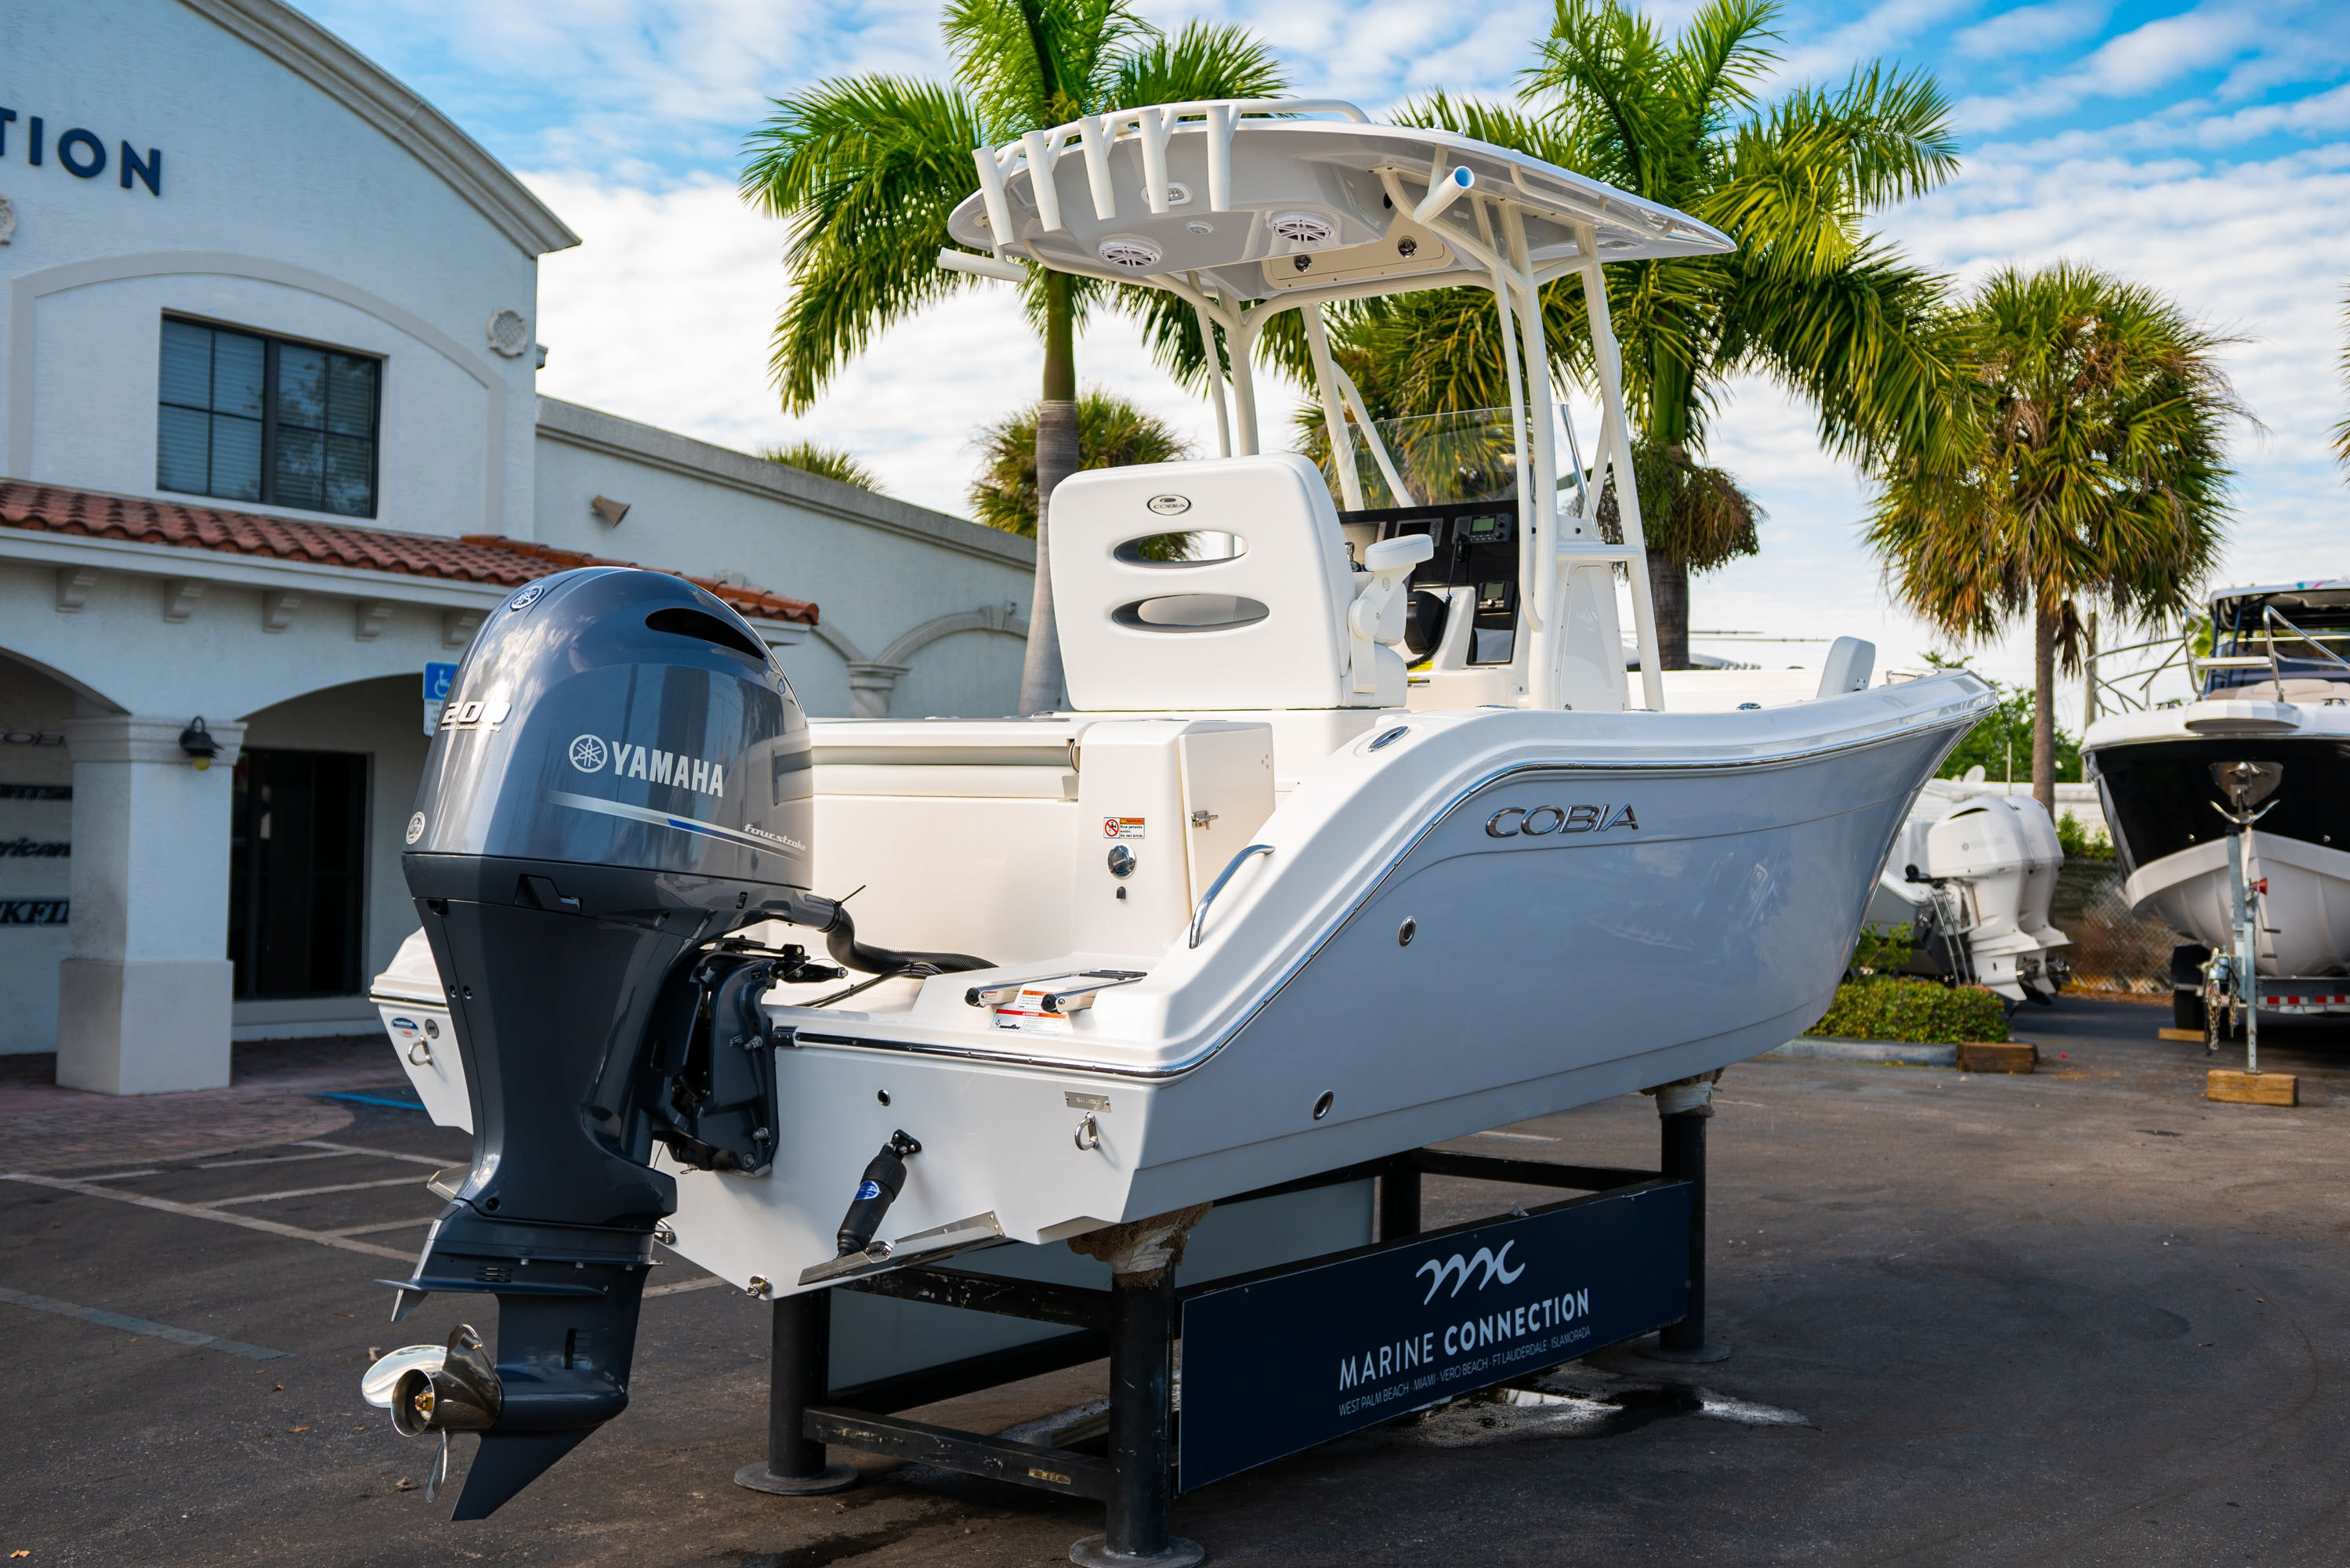 Thumbnail 7 for New 2020 Cobia 220 CC boat for sale in West Palm Beach, FL